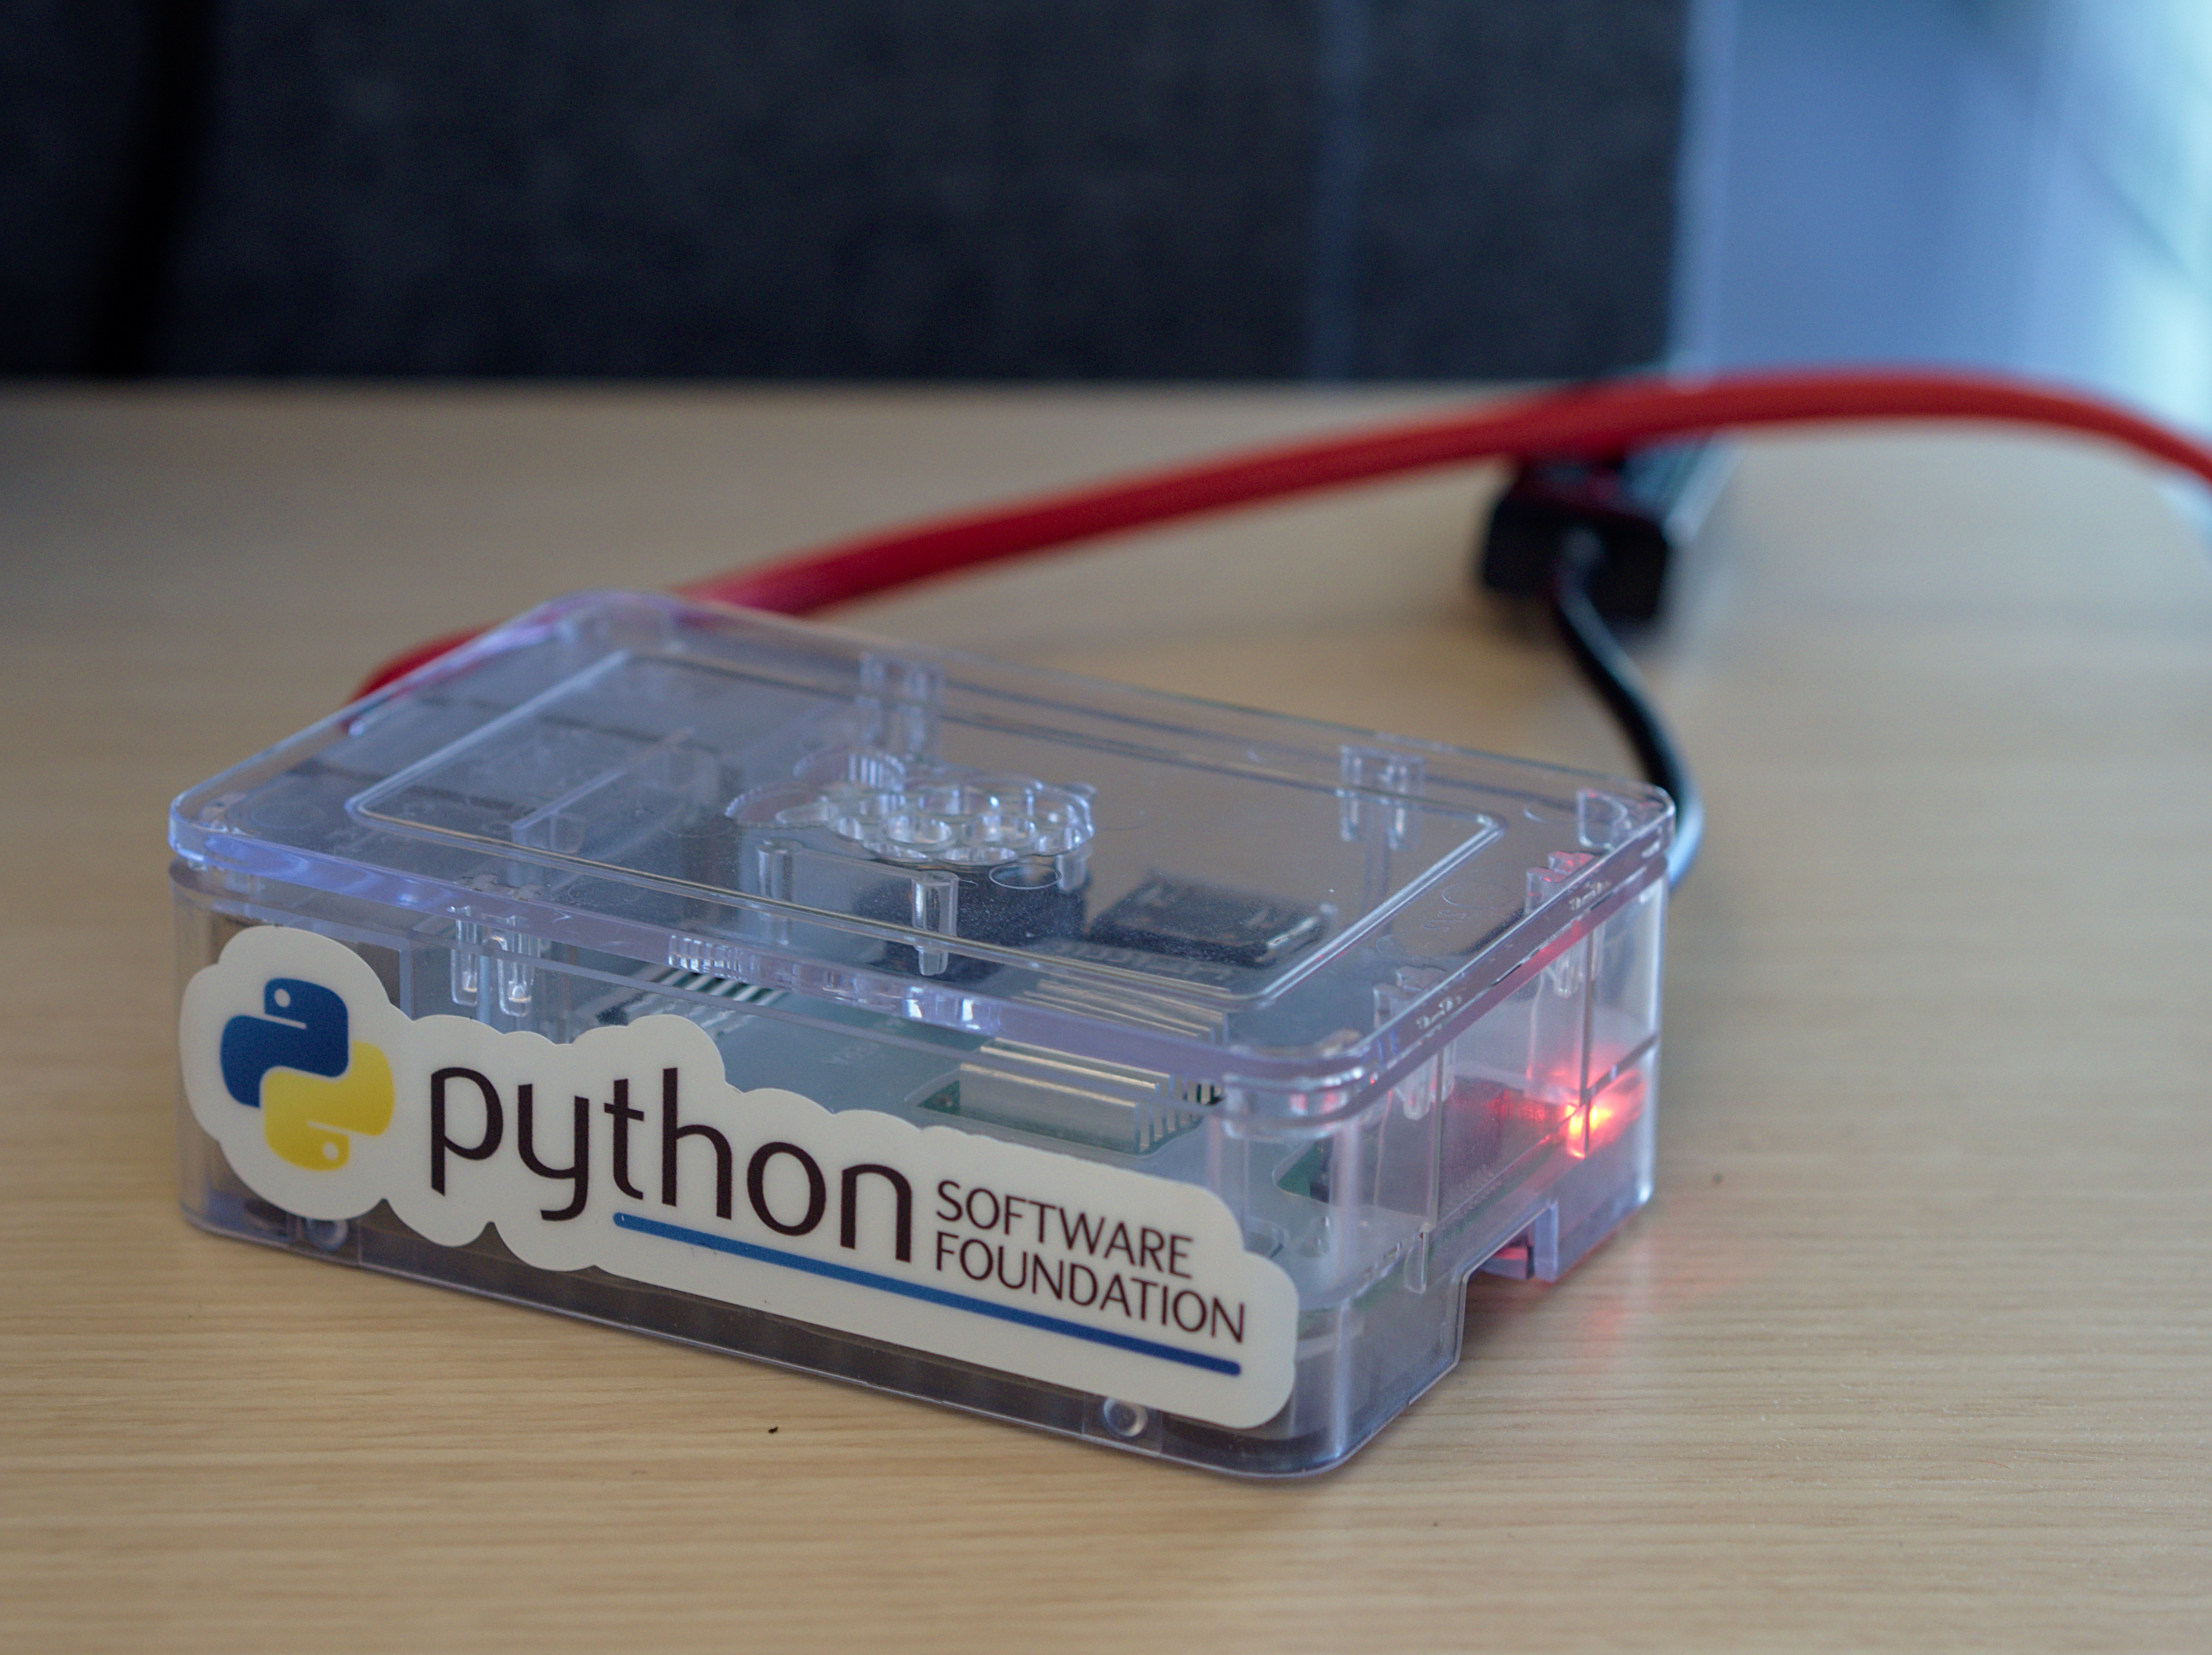 A raspberry pi case plugged into the network